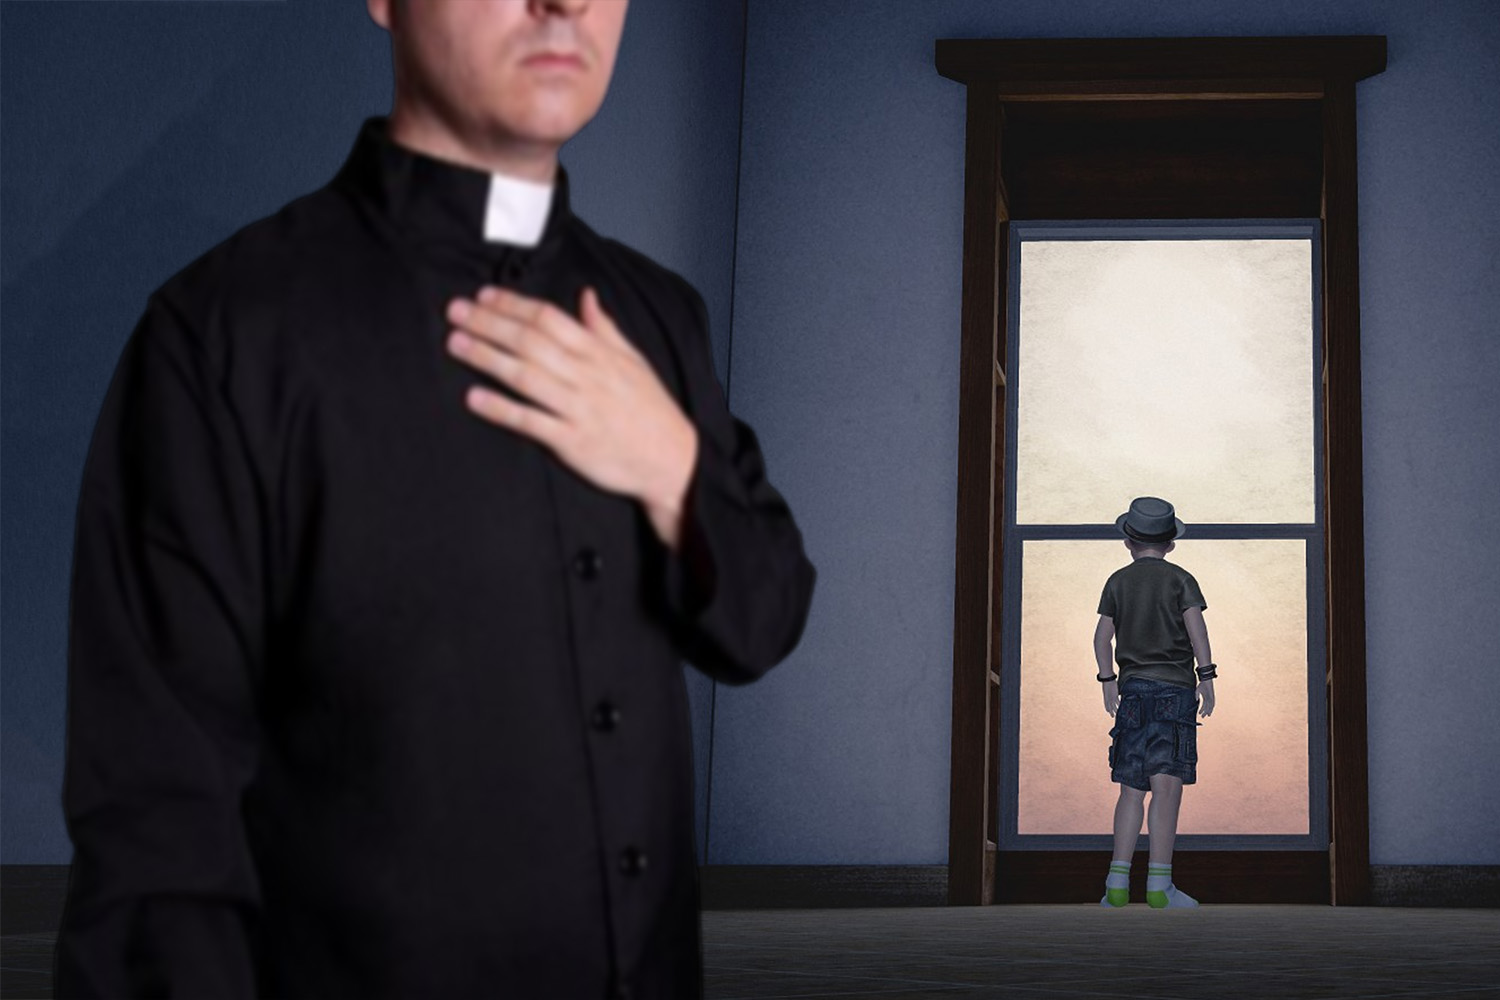 Priests and Child Abuse — A Predictable Result